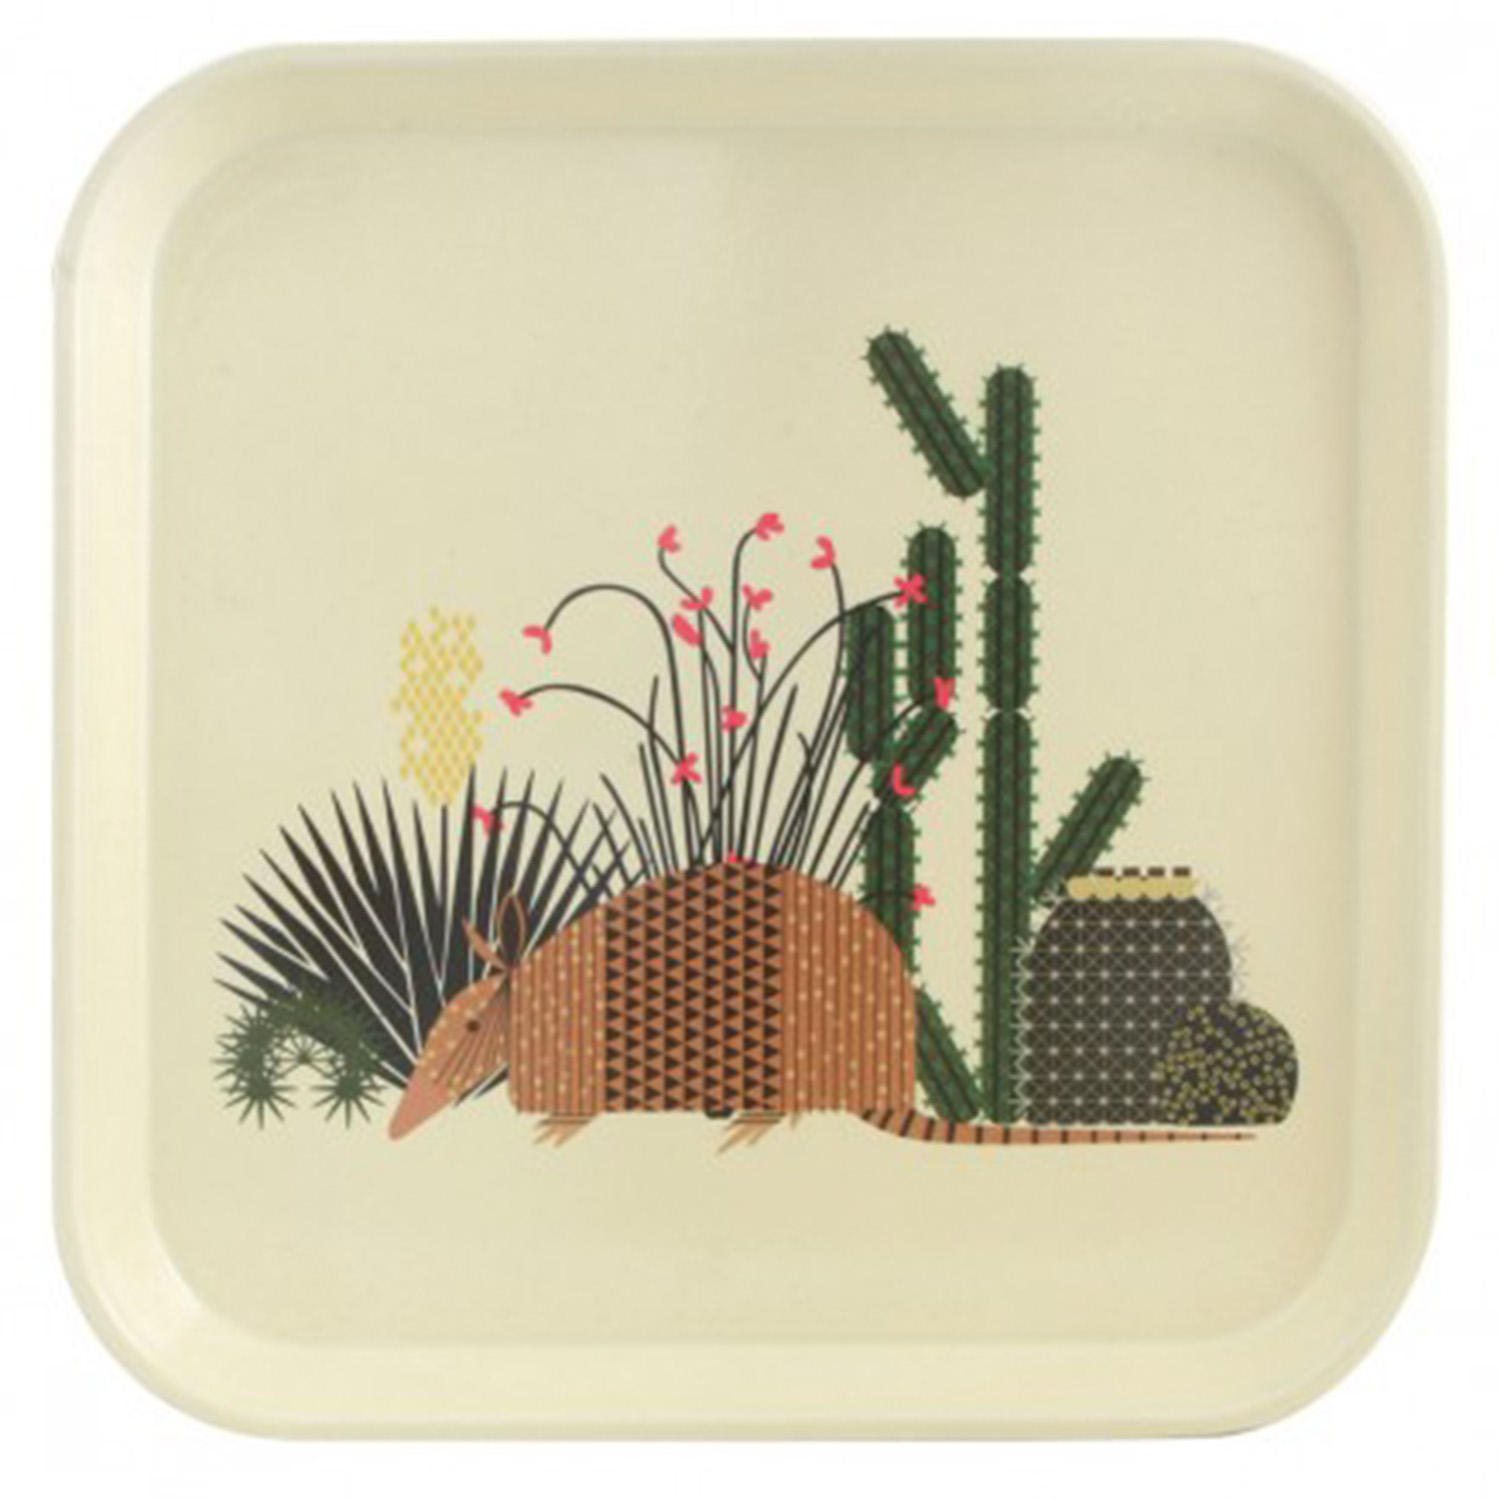 Harper + Oldham cactus tray from Fishs Eddy, $31.95